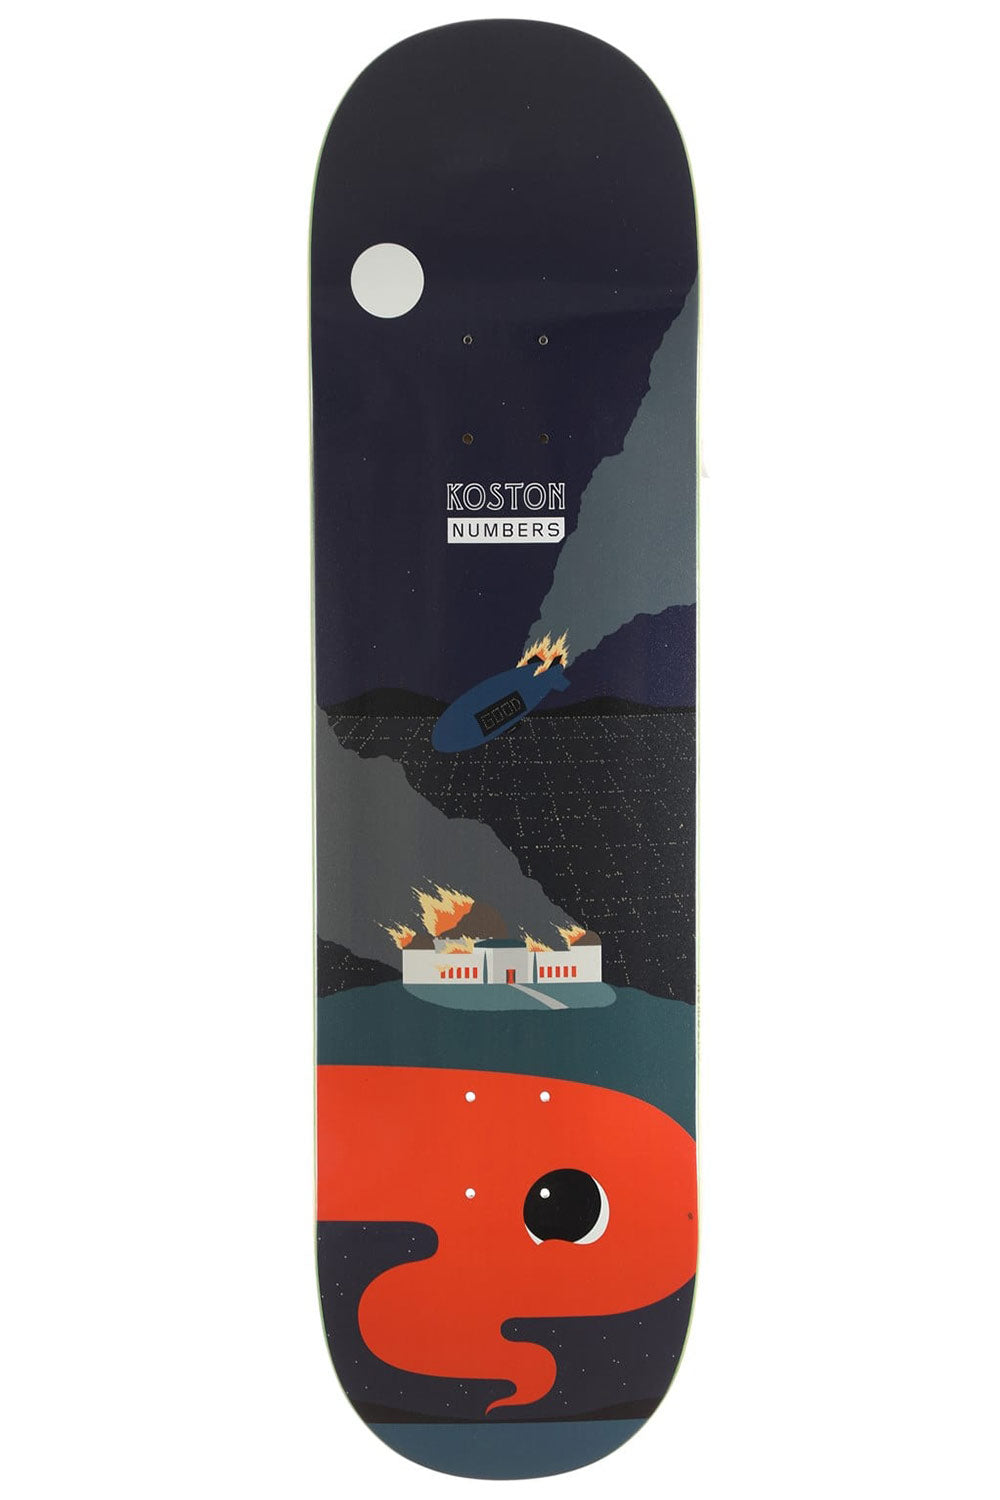 Numbers Edition Koston Edition 6 Deck (Series 1) - 8.5"